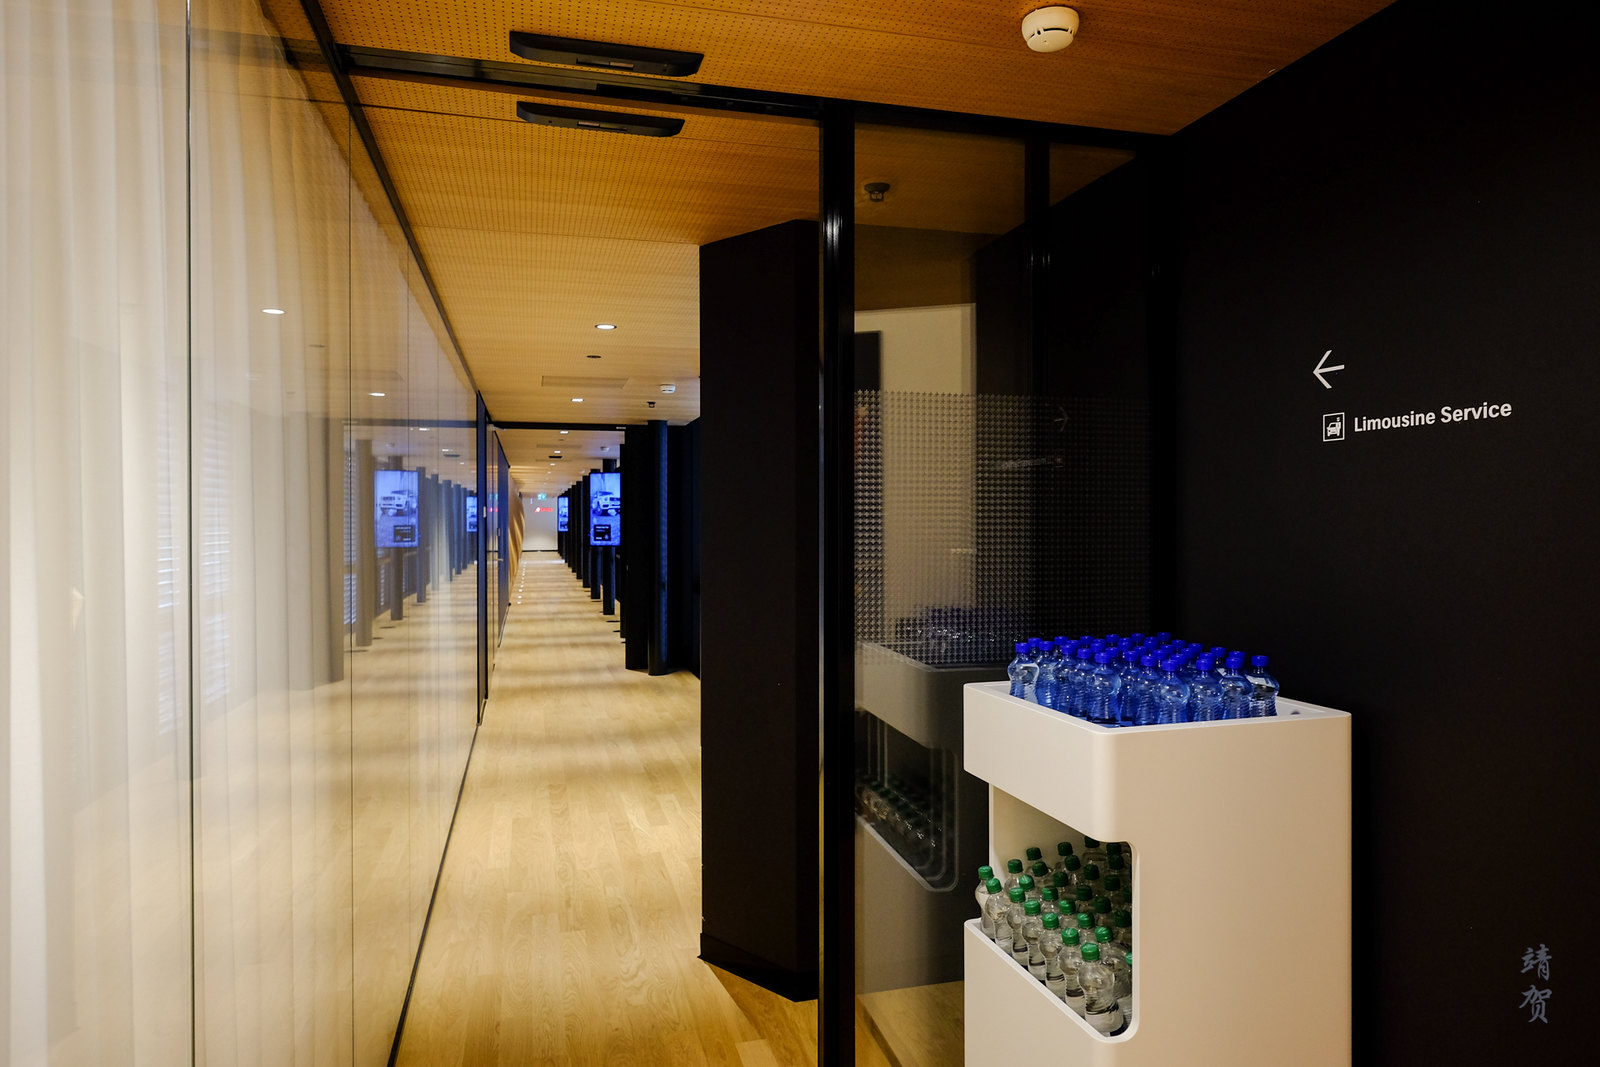 Walkway to Limo area with bottled water cabinet